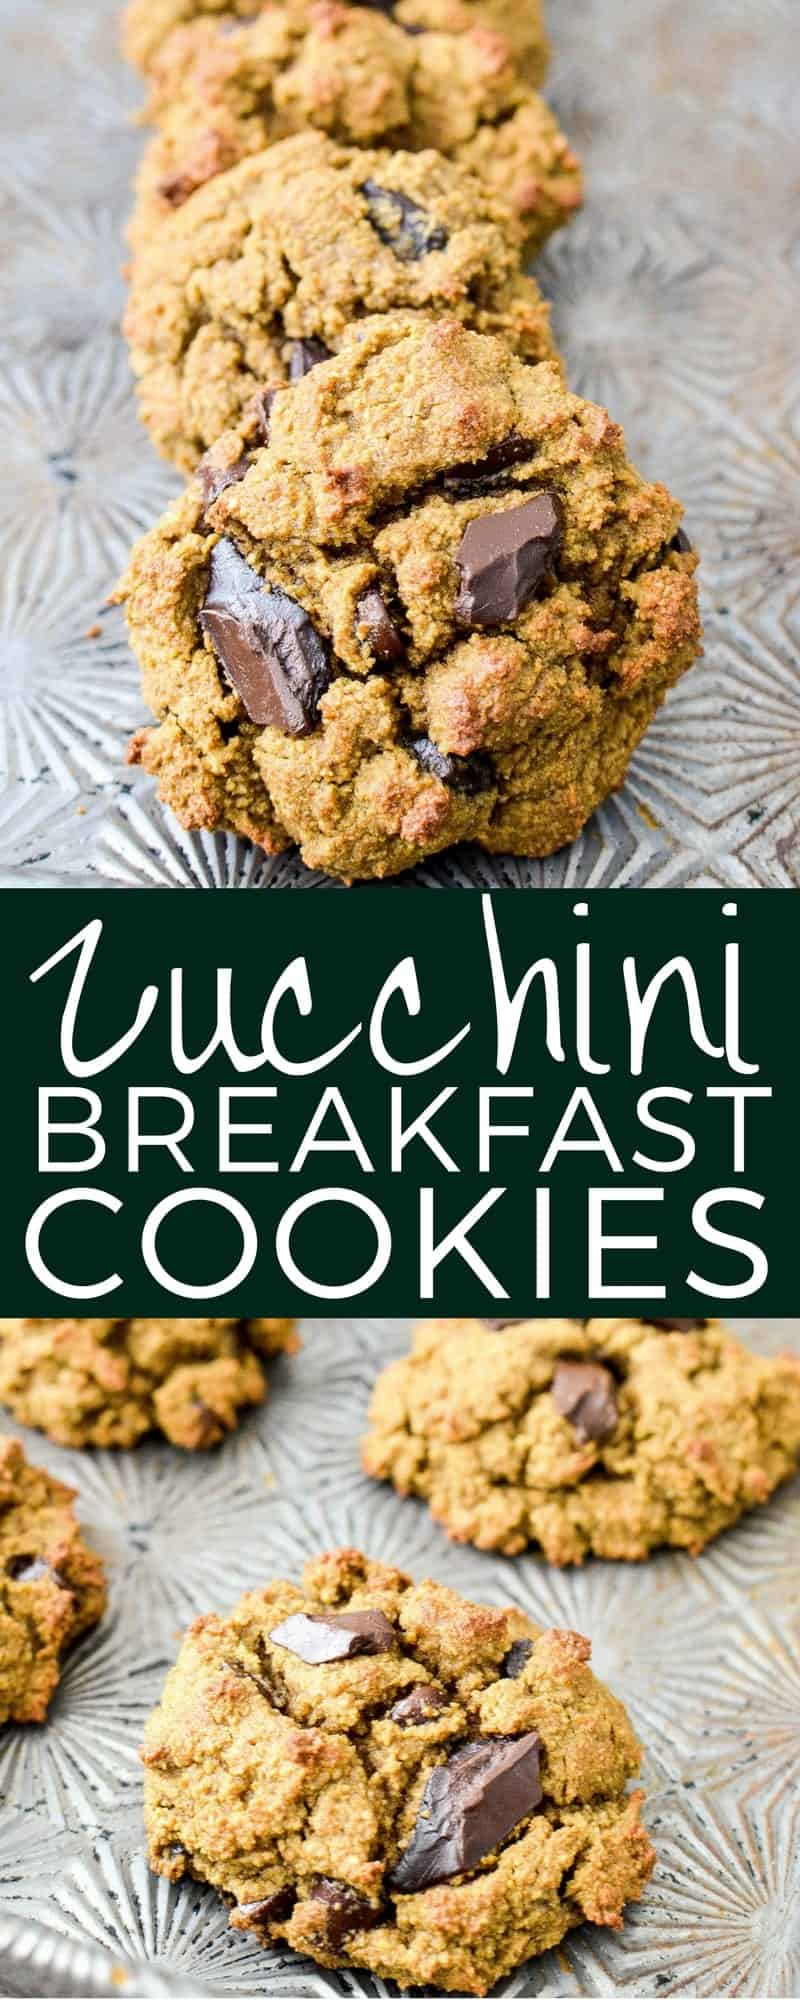 Paleo Zucchini Breakfast Cookies are a healthy and nutritious breakfast recipe loaded with sneaky veggies that tastes like dessert! #glutenfree #grainfree #dairyfree #breakfast #cookies #zucchini #paleo #healthybreakfast #healthyrecipe